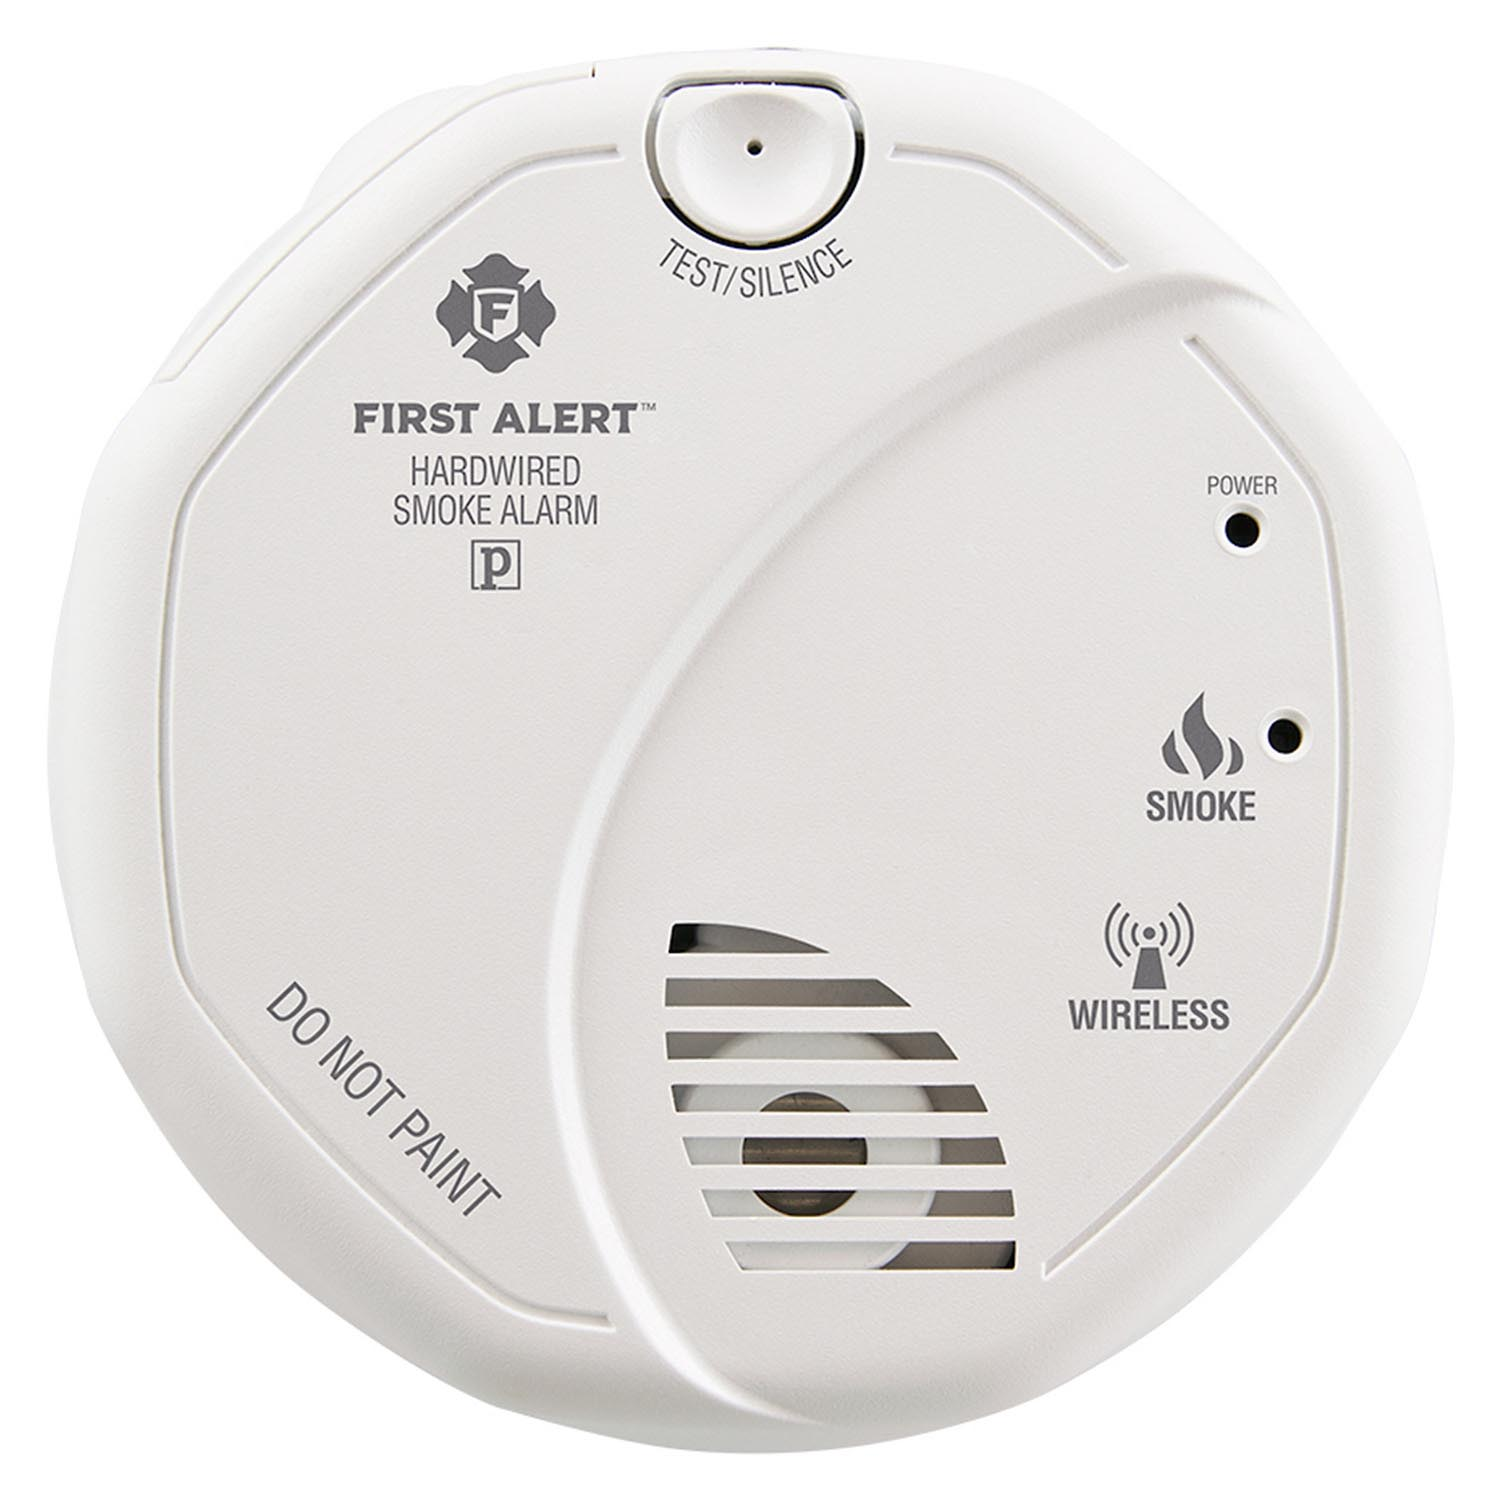 First Alert Sa521cn 3st Wireless Interconnect Hardwired Smoke Alarm First Alert Store